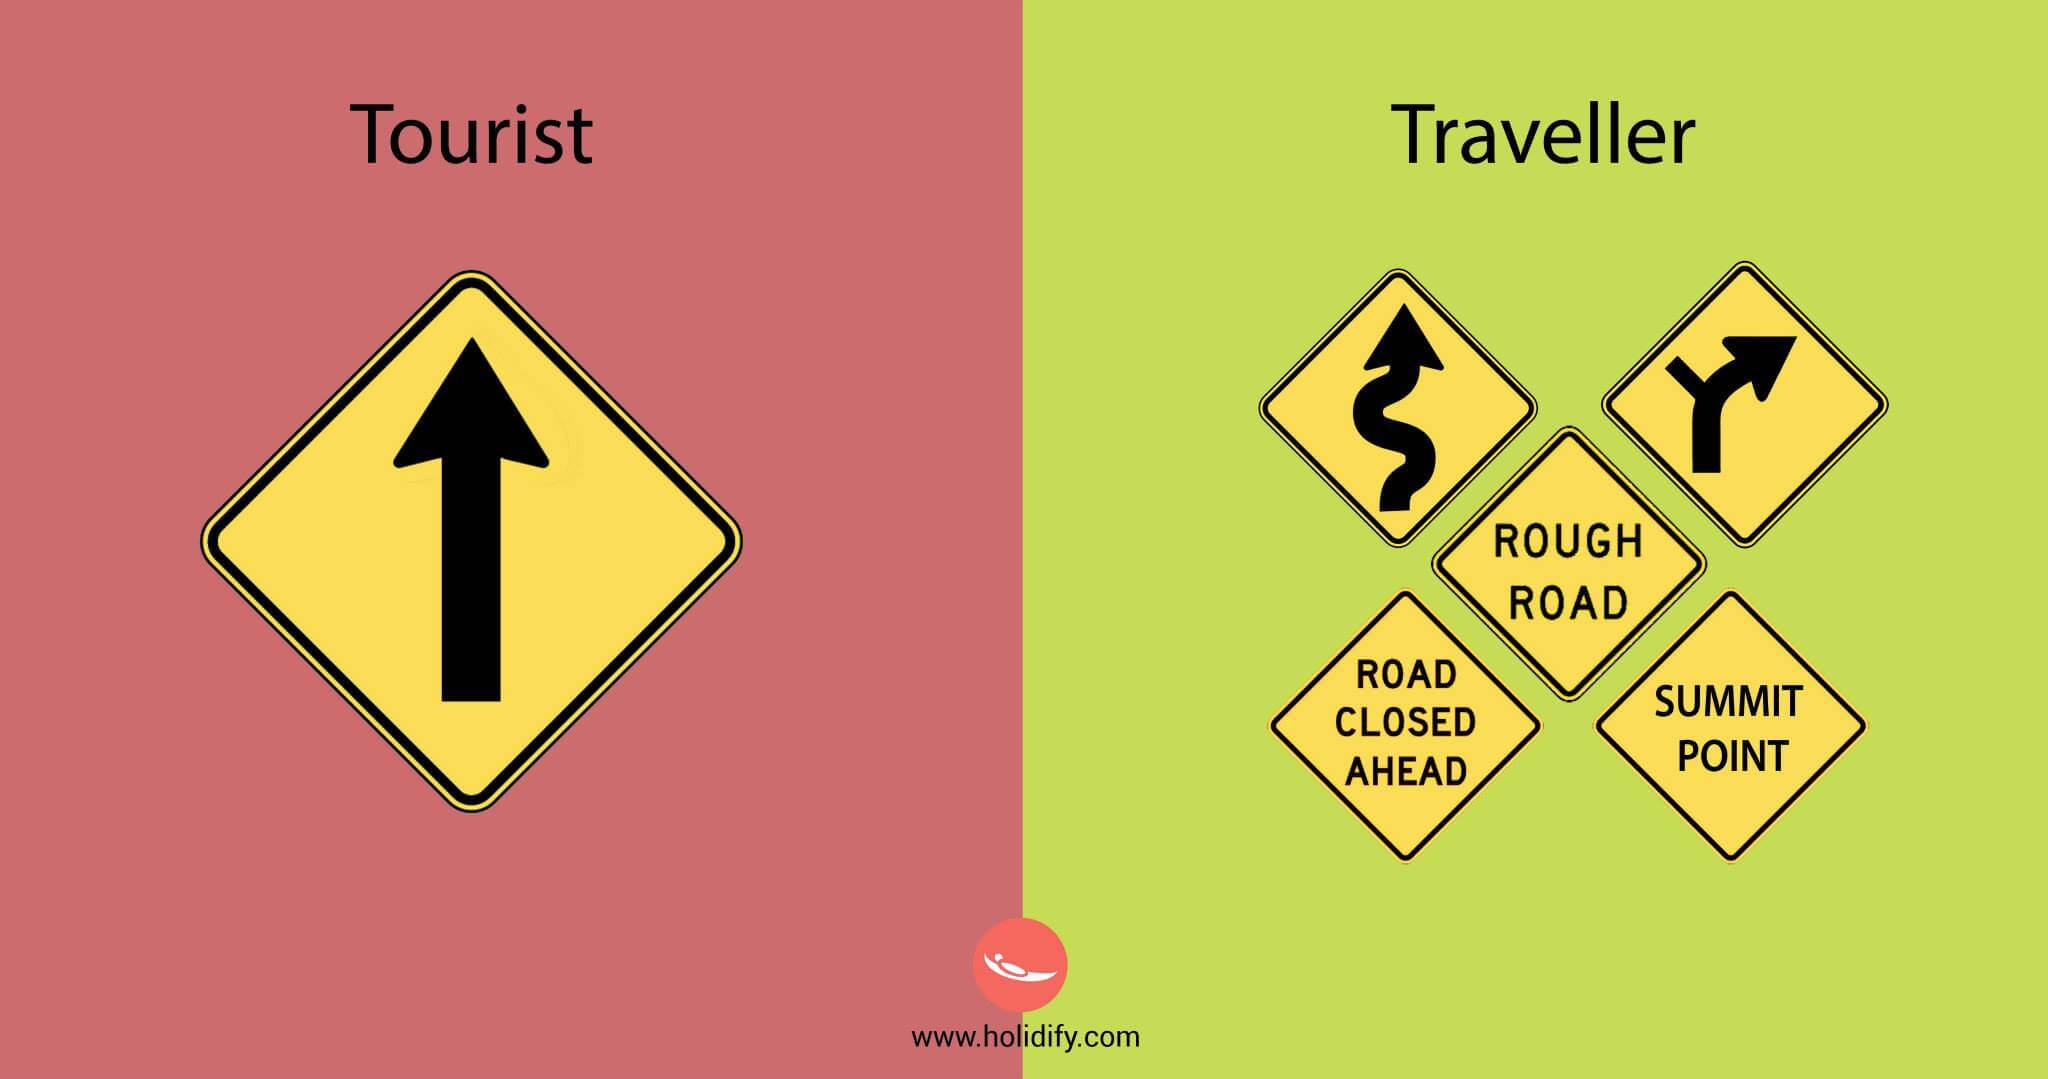 These 12 Minimalistic Illustrations Show Differences Between Tourists and Travelers -